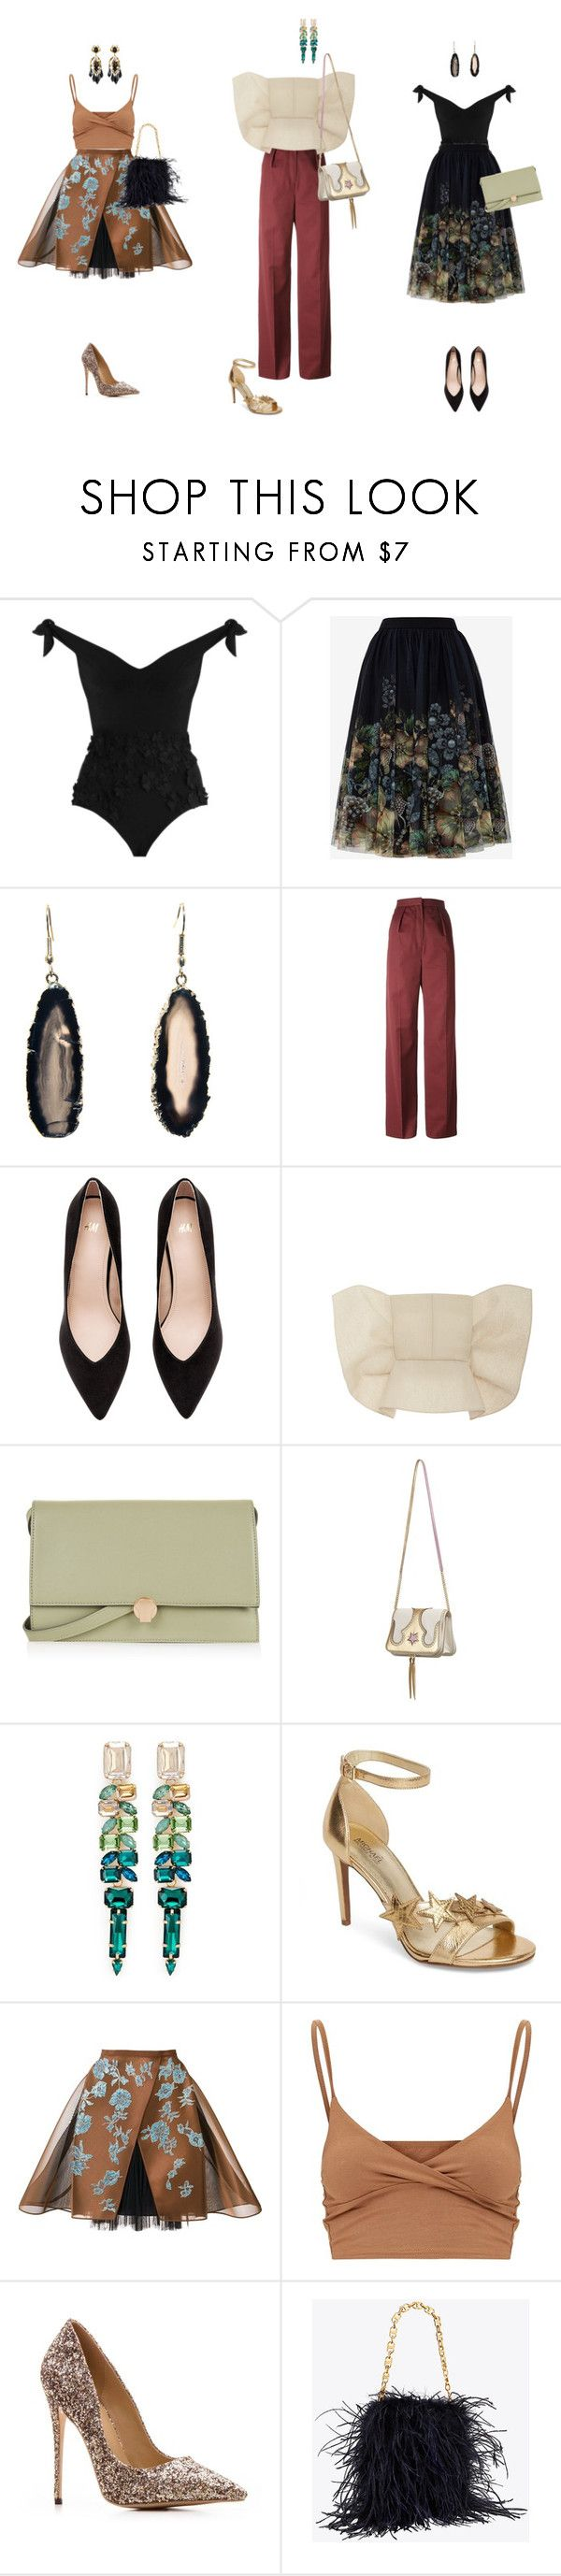 """New Years Eve Outfits 1"" by palina-parker ❤ liked on Polyvore featuring Zimmermann, Ted Baker, Vilshenko, Delpozo, Topshop, The Volon, Jardin, MICHAEL Michael Kors and Gucci"